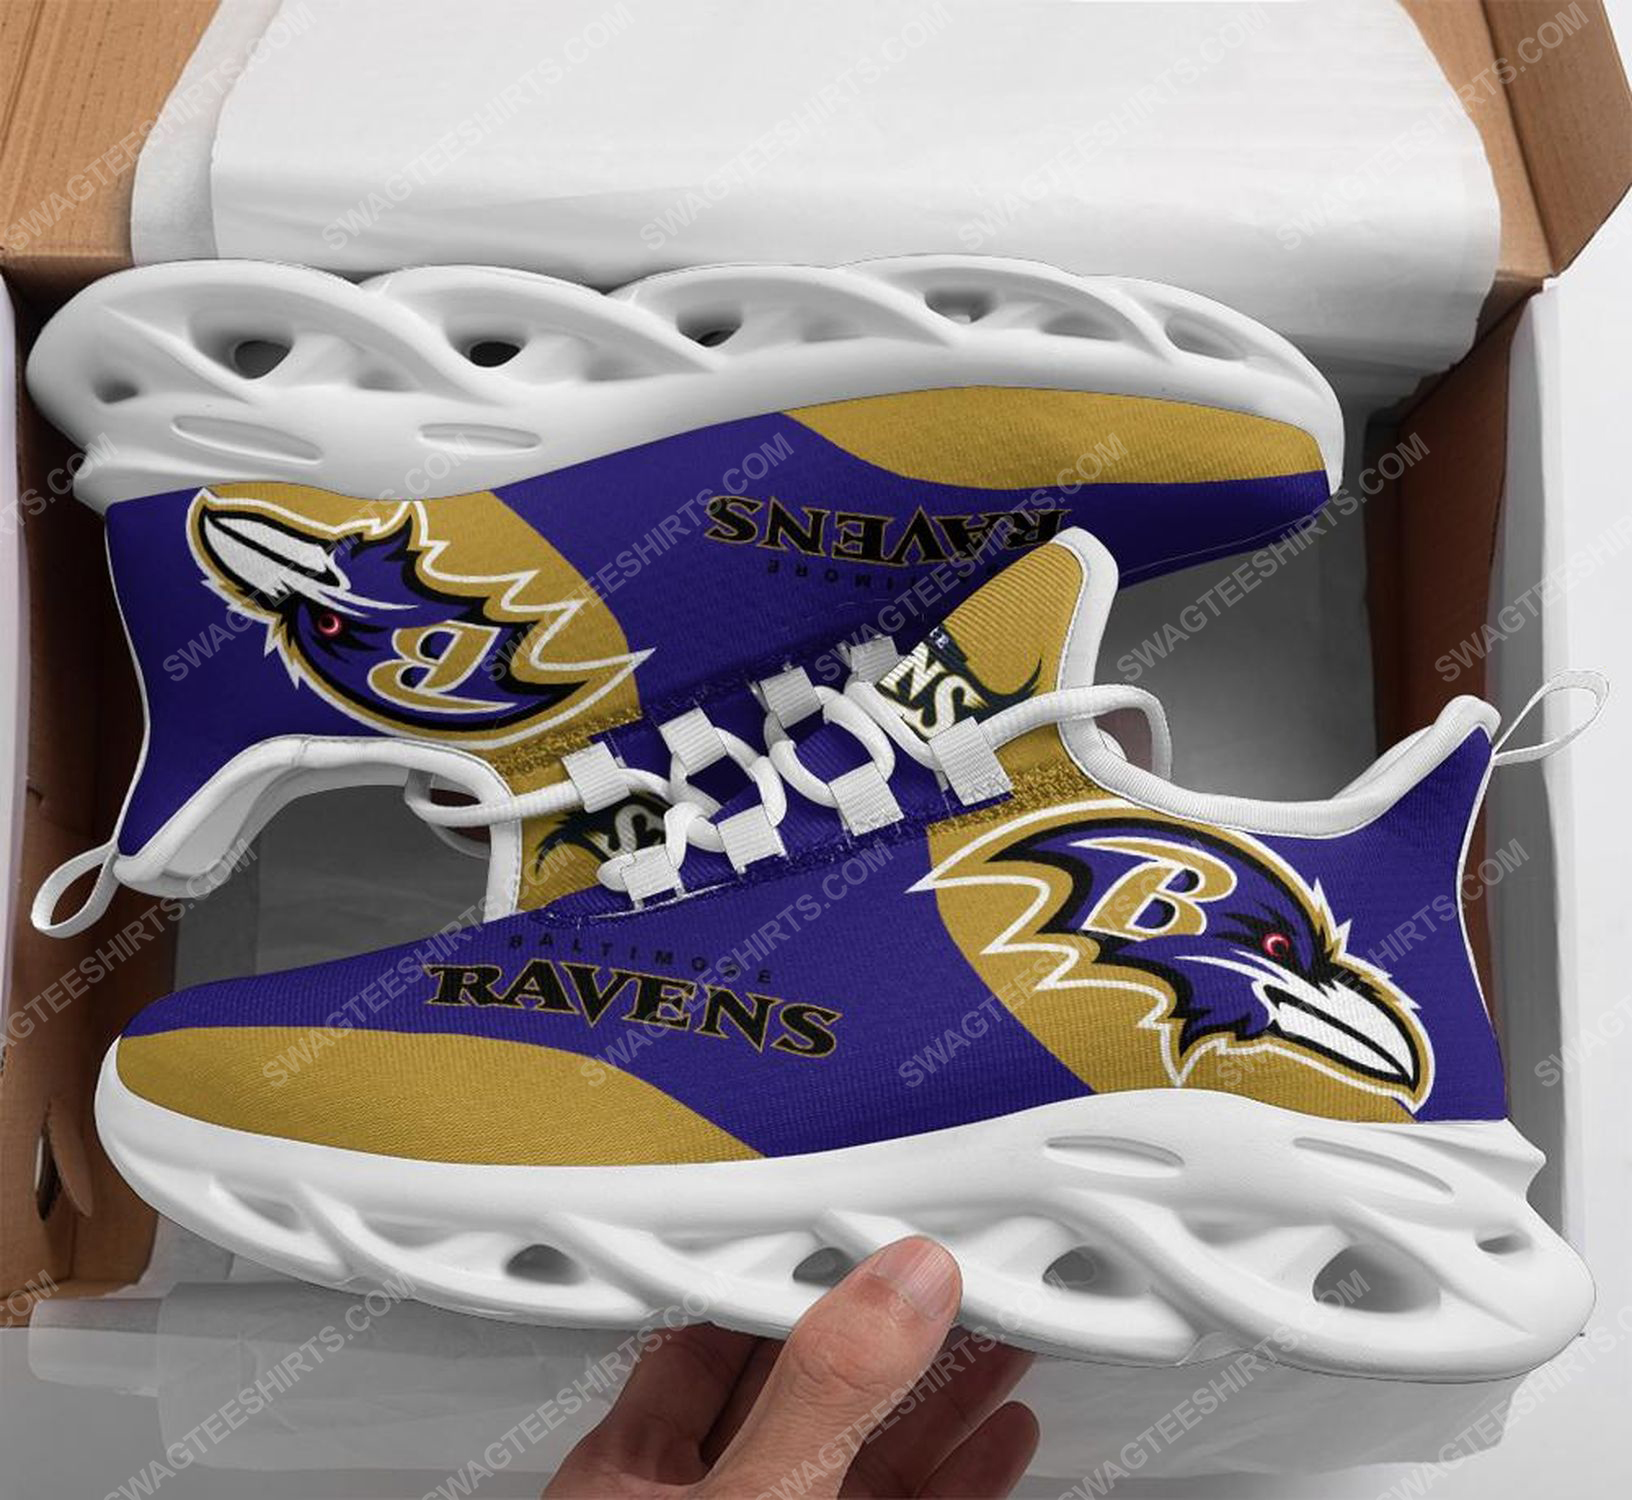 The baltimore ravens football team max soul shoes 1 - Copy (2)